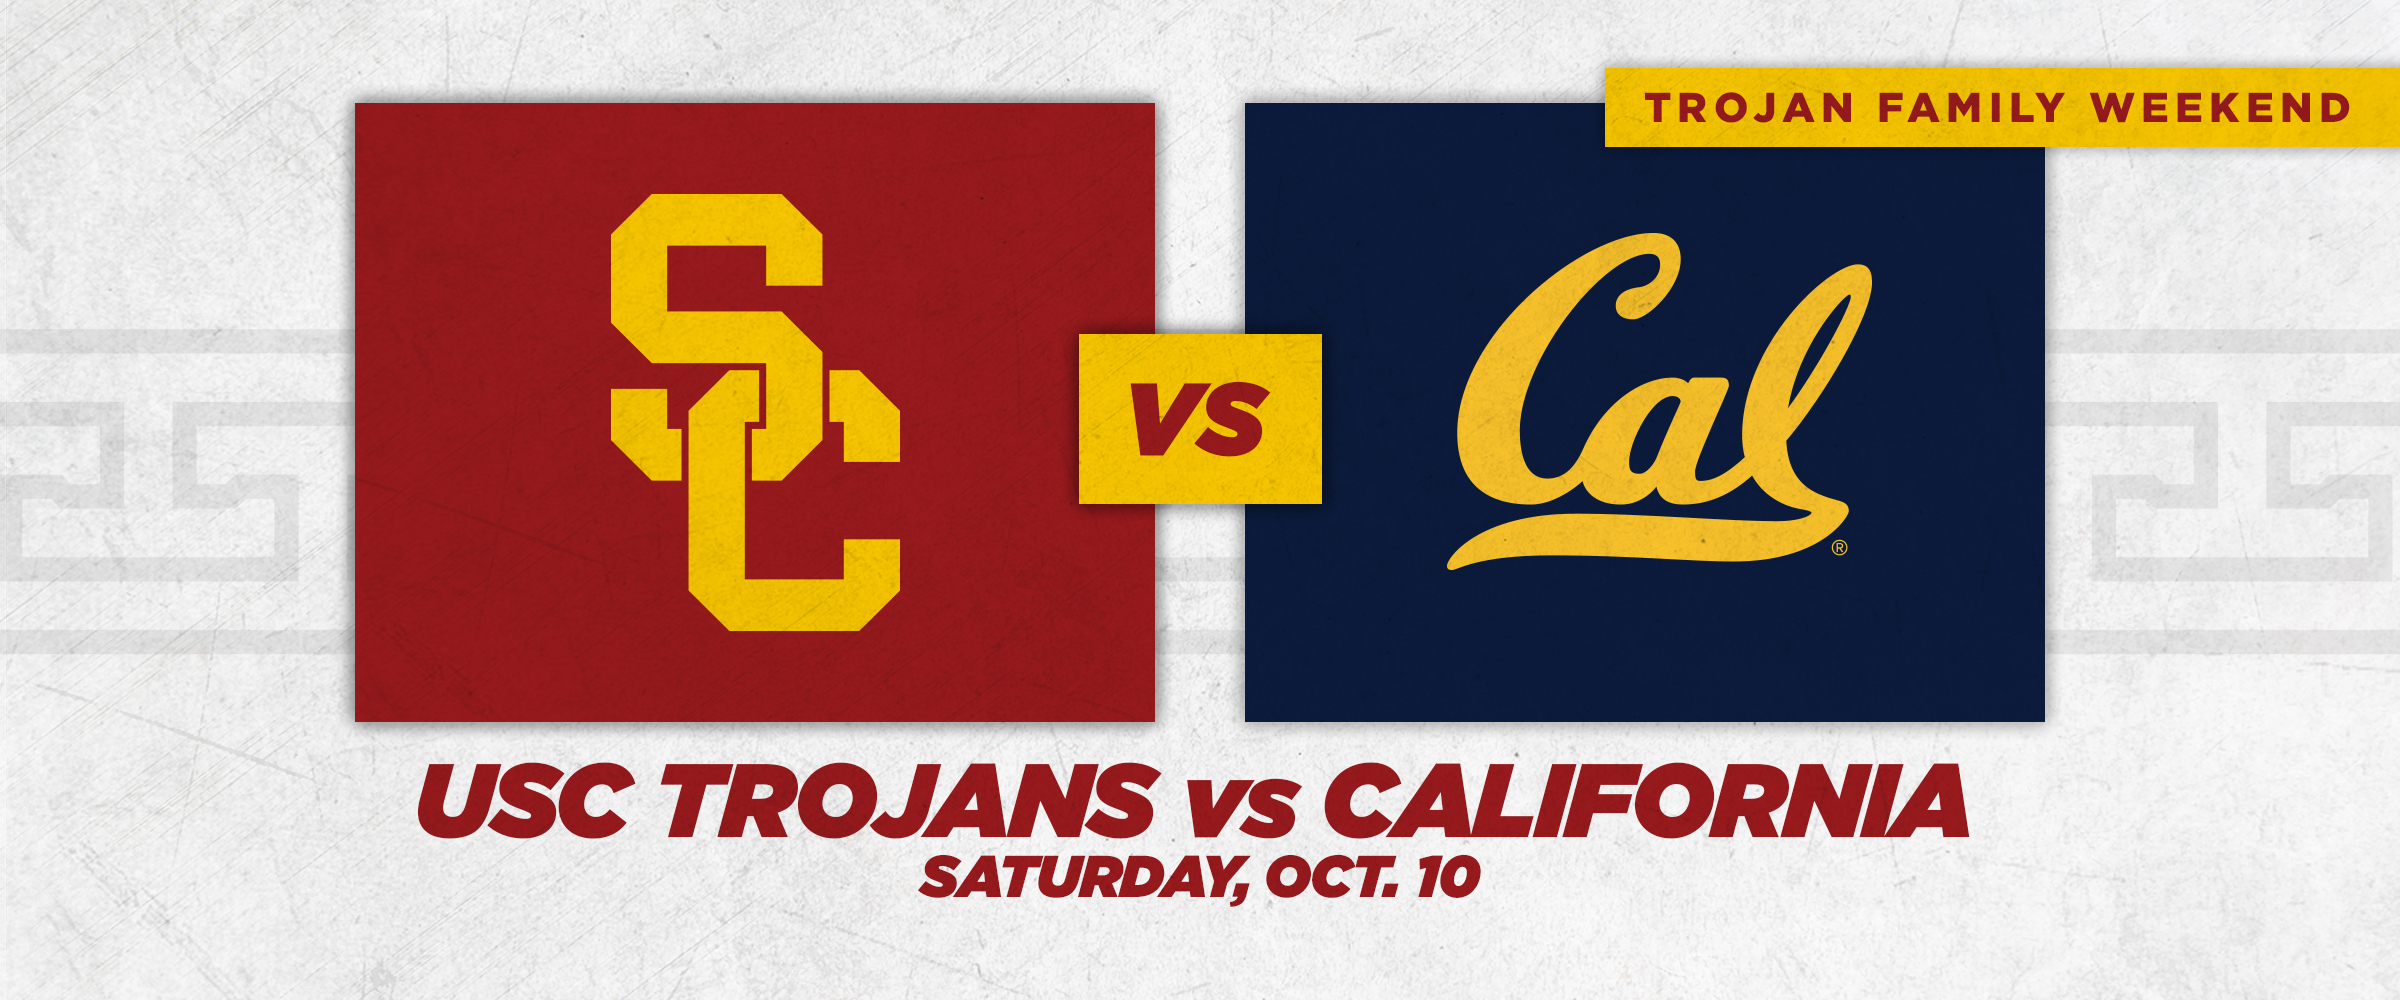 USC vs CALIFORNIA